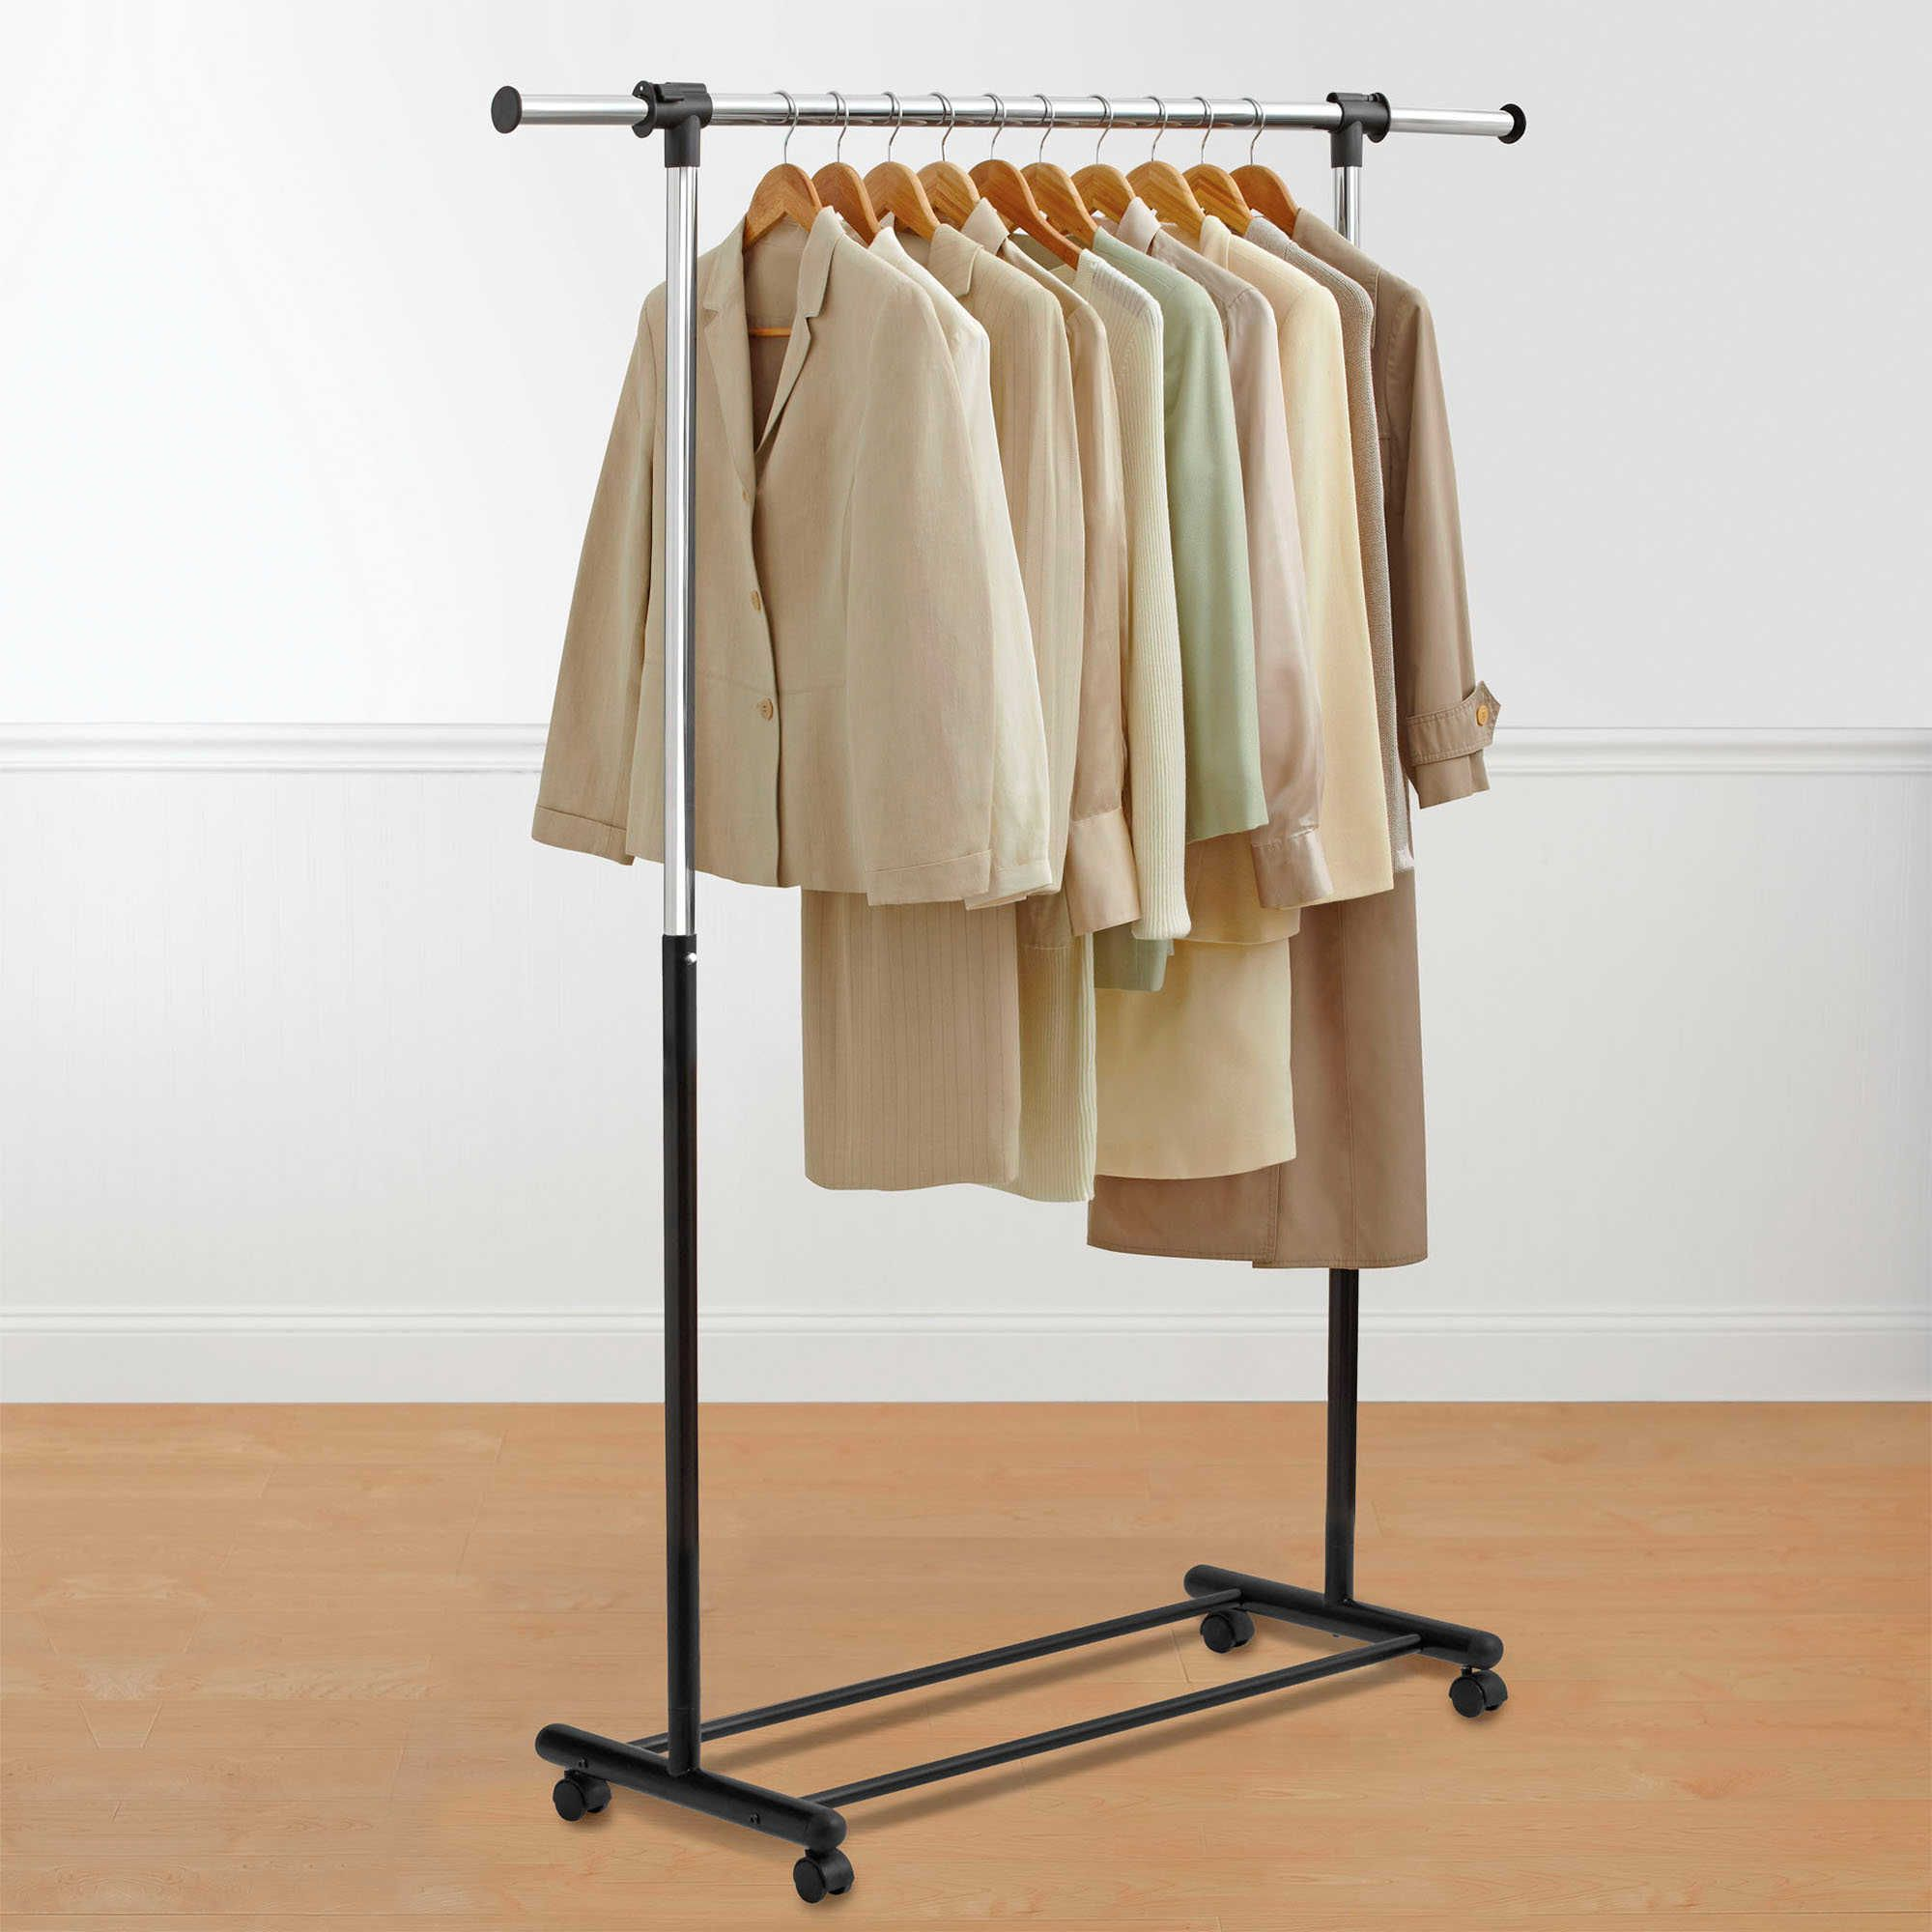 Bed Bath And Beyond Garment Rack Endearing Portable And Expandable Garment Rack In Blackchrome  Garment Racks Decorating Inspiration